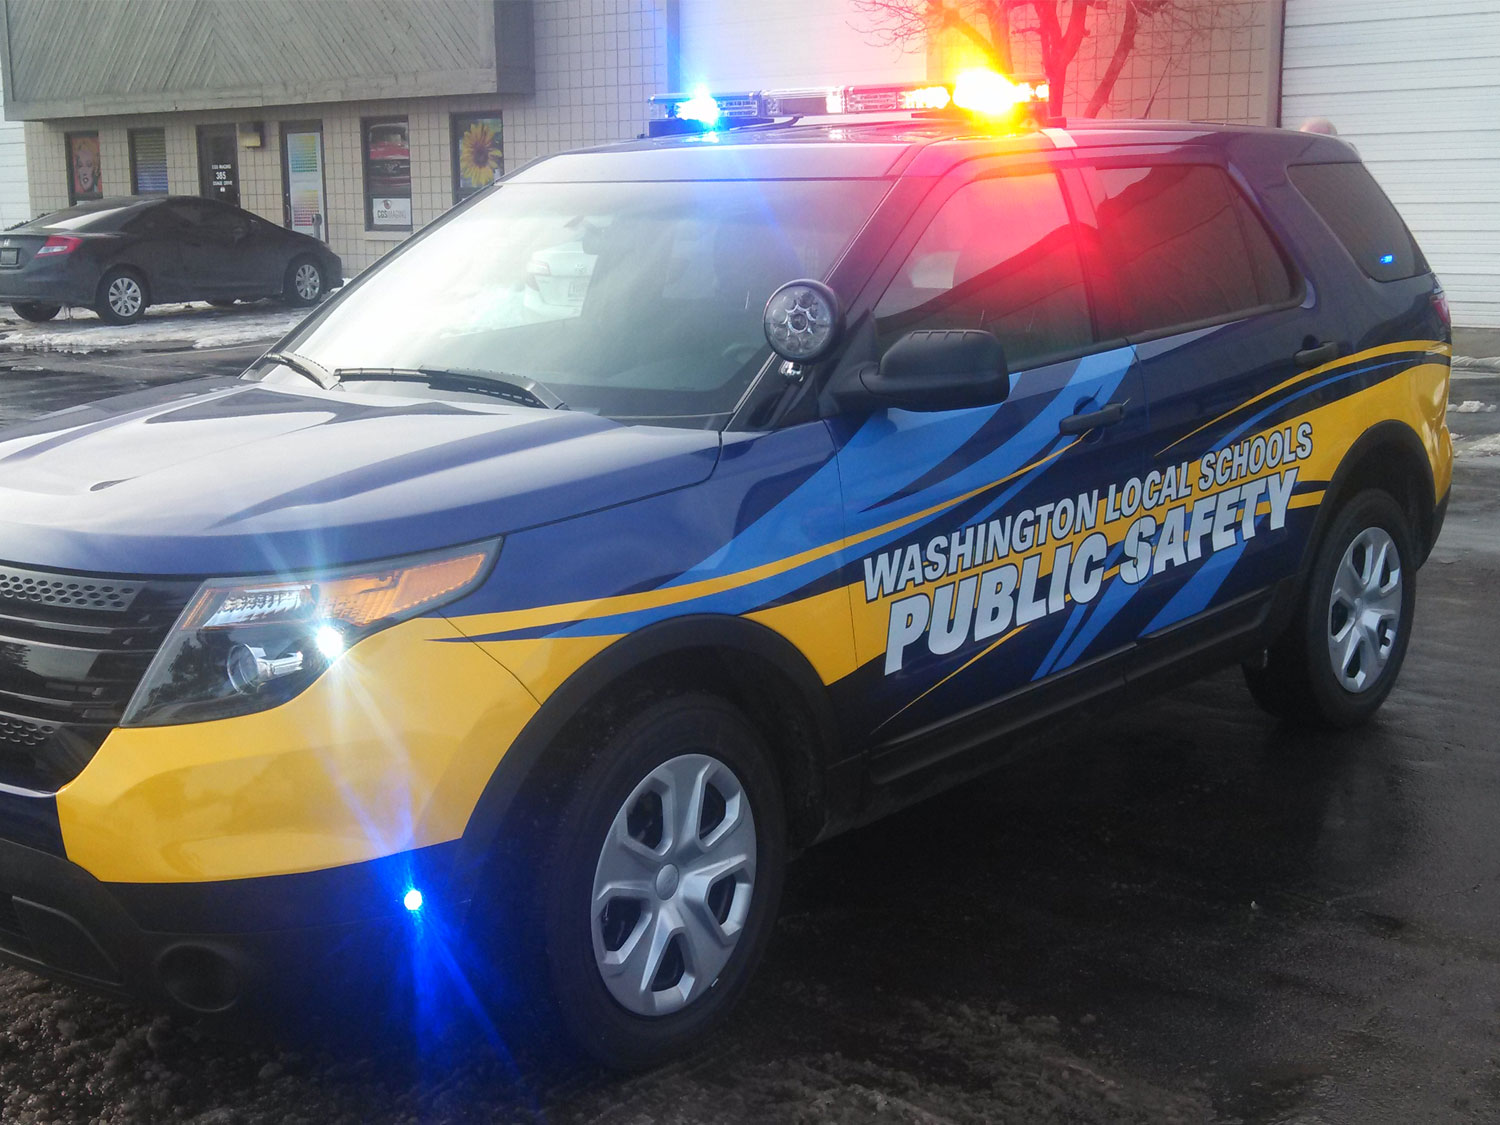 Toledo Washington Local Schools Public Safety Vehicle Graphics